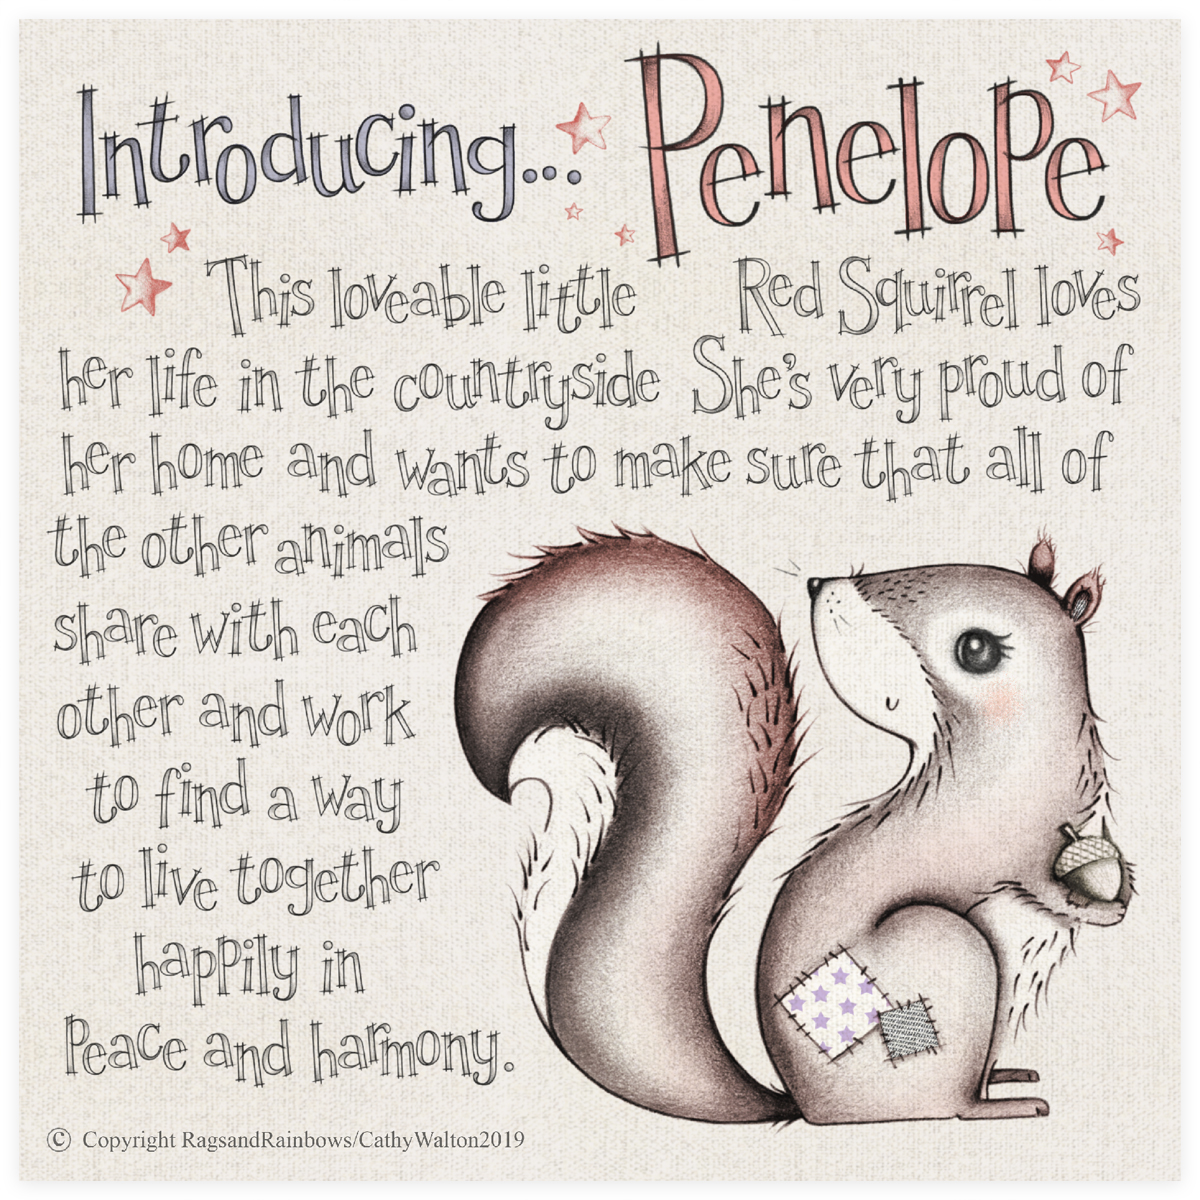 Penelope the Red Squirrel